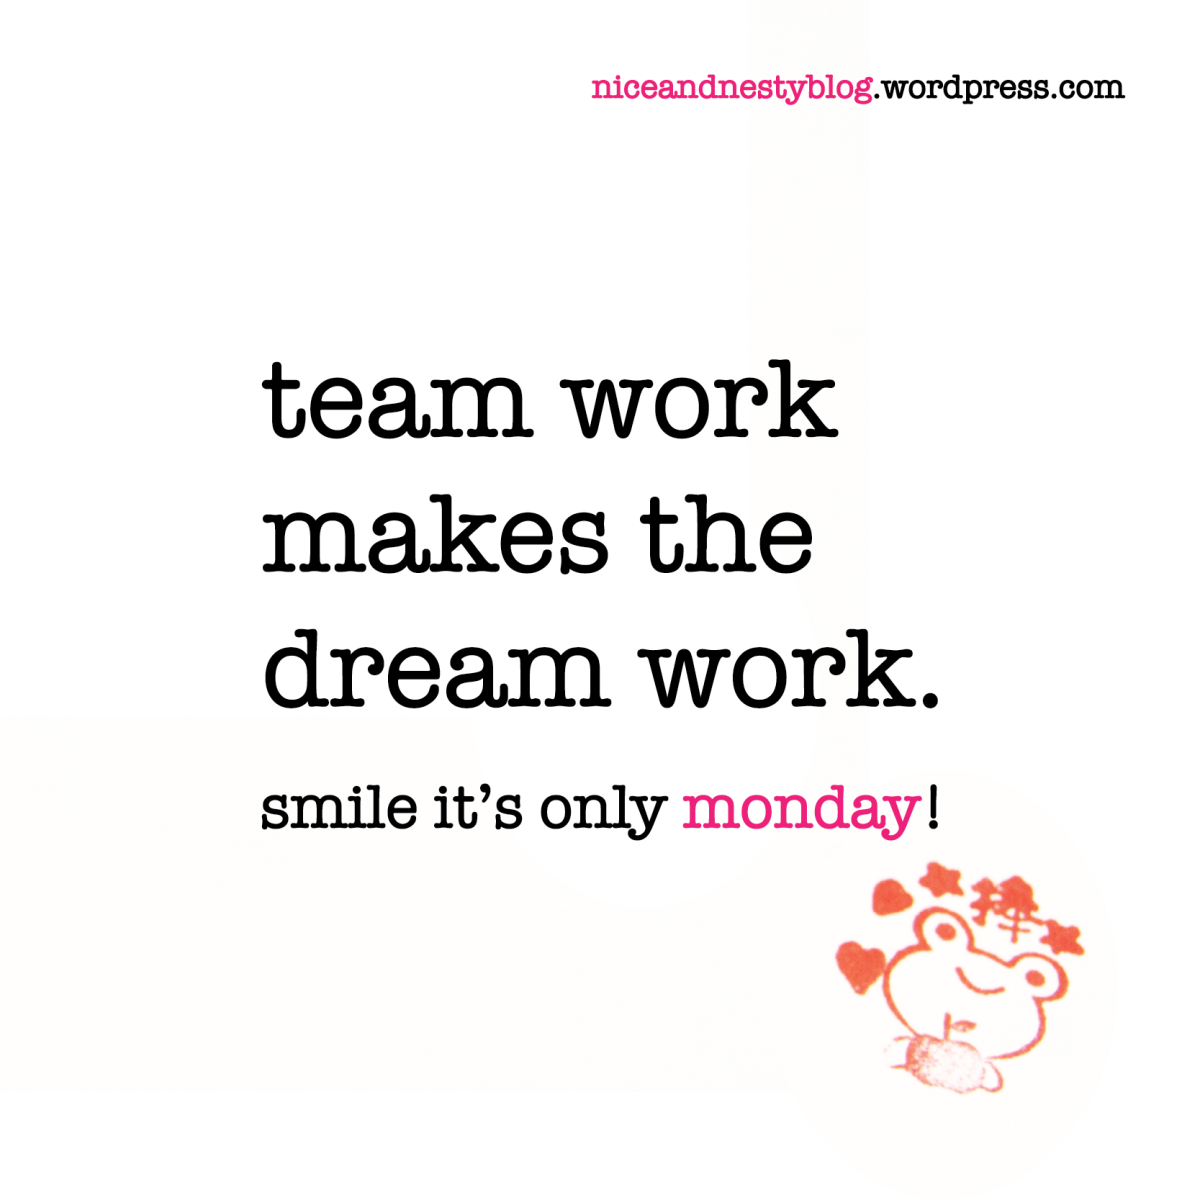 team work makes the dream work. #team #work #make #dream #monday #witty #quote #niceandnesty #nice #nesty #funny #life #short #serious #smile | check out more www.niceandnestyblog.wordpress.com